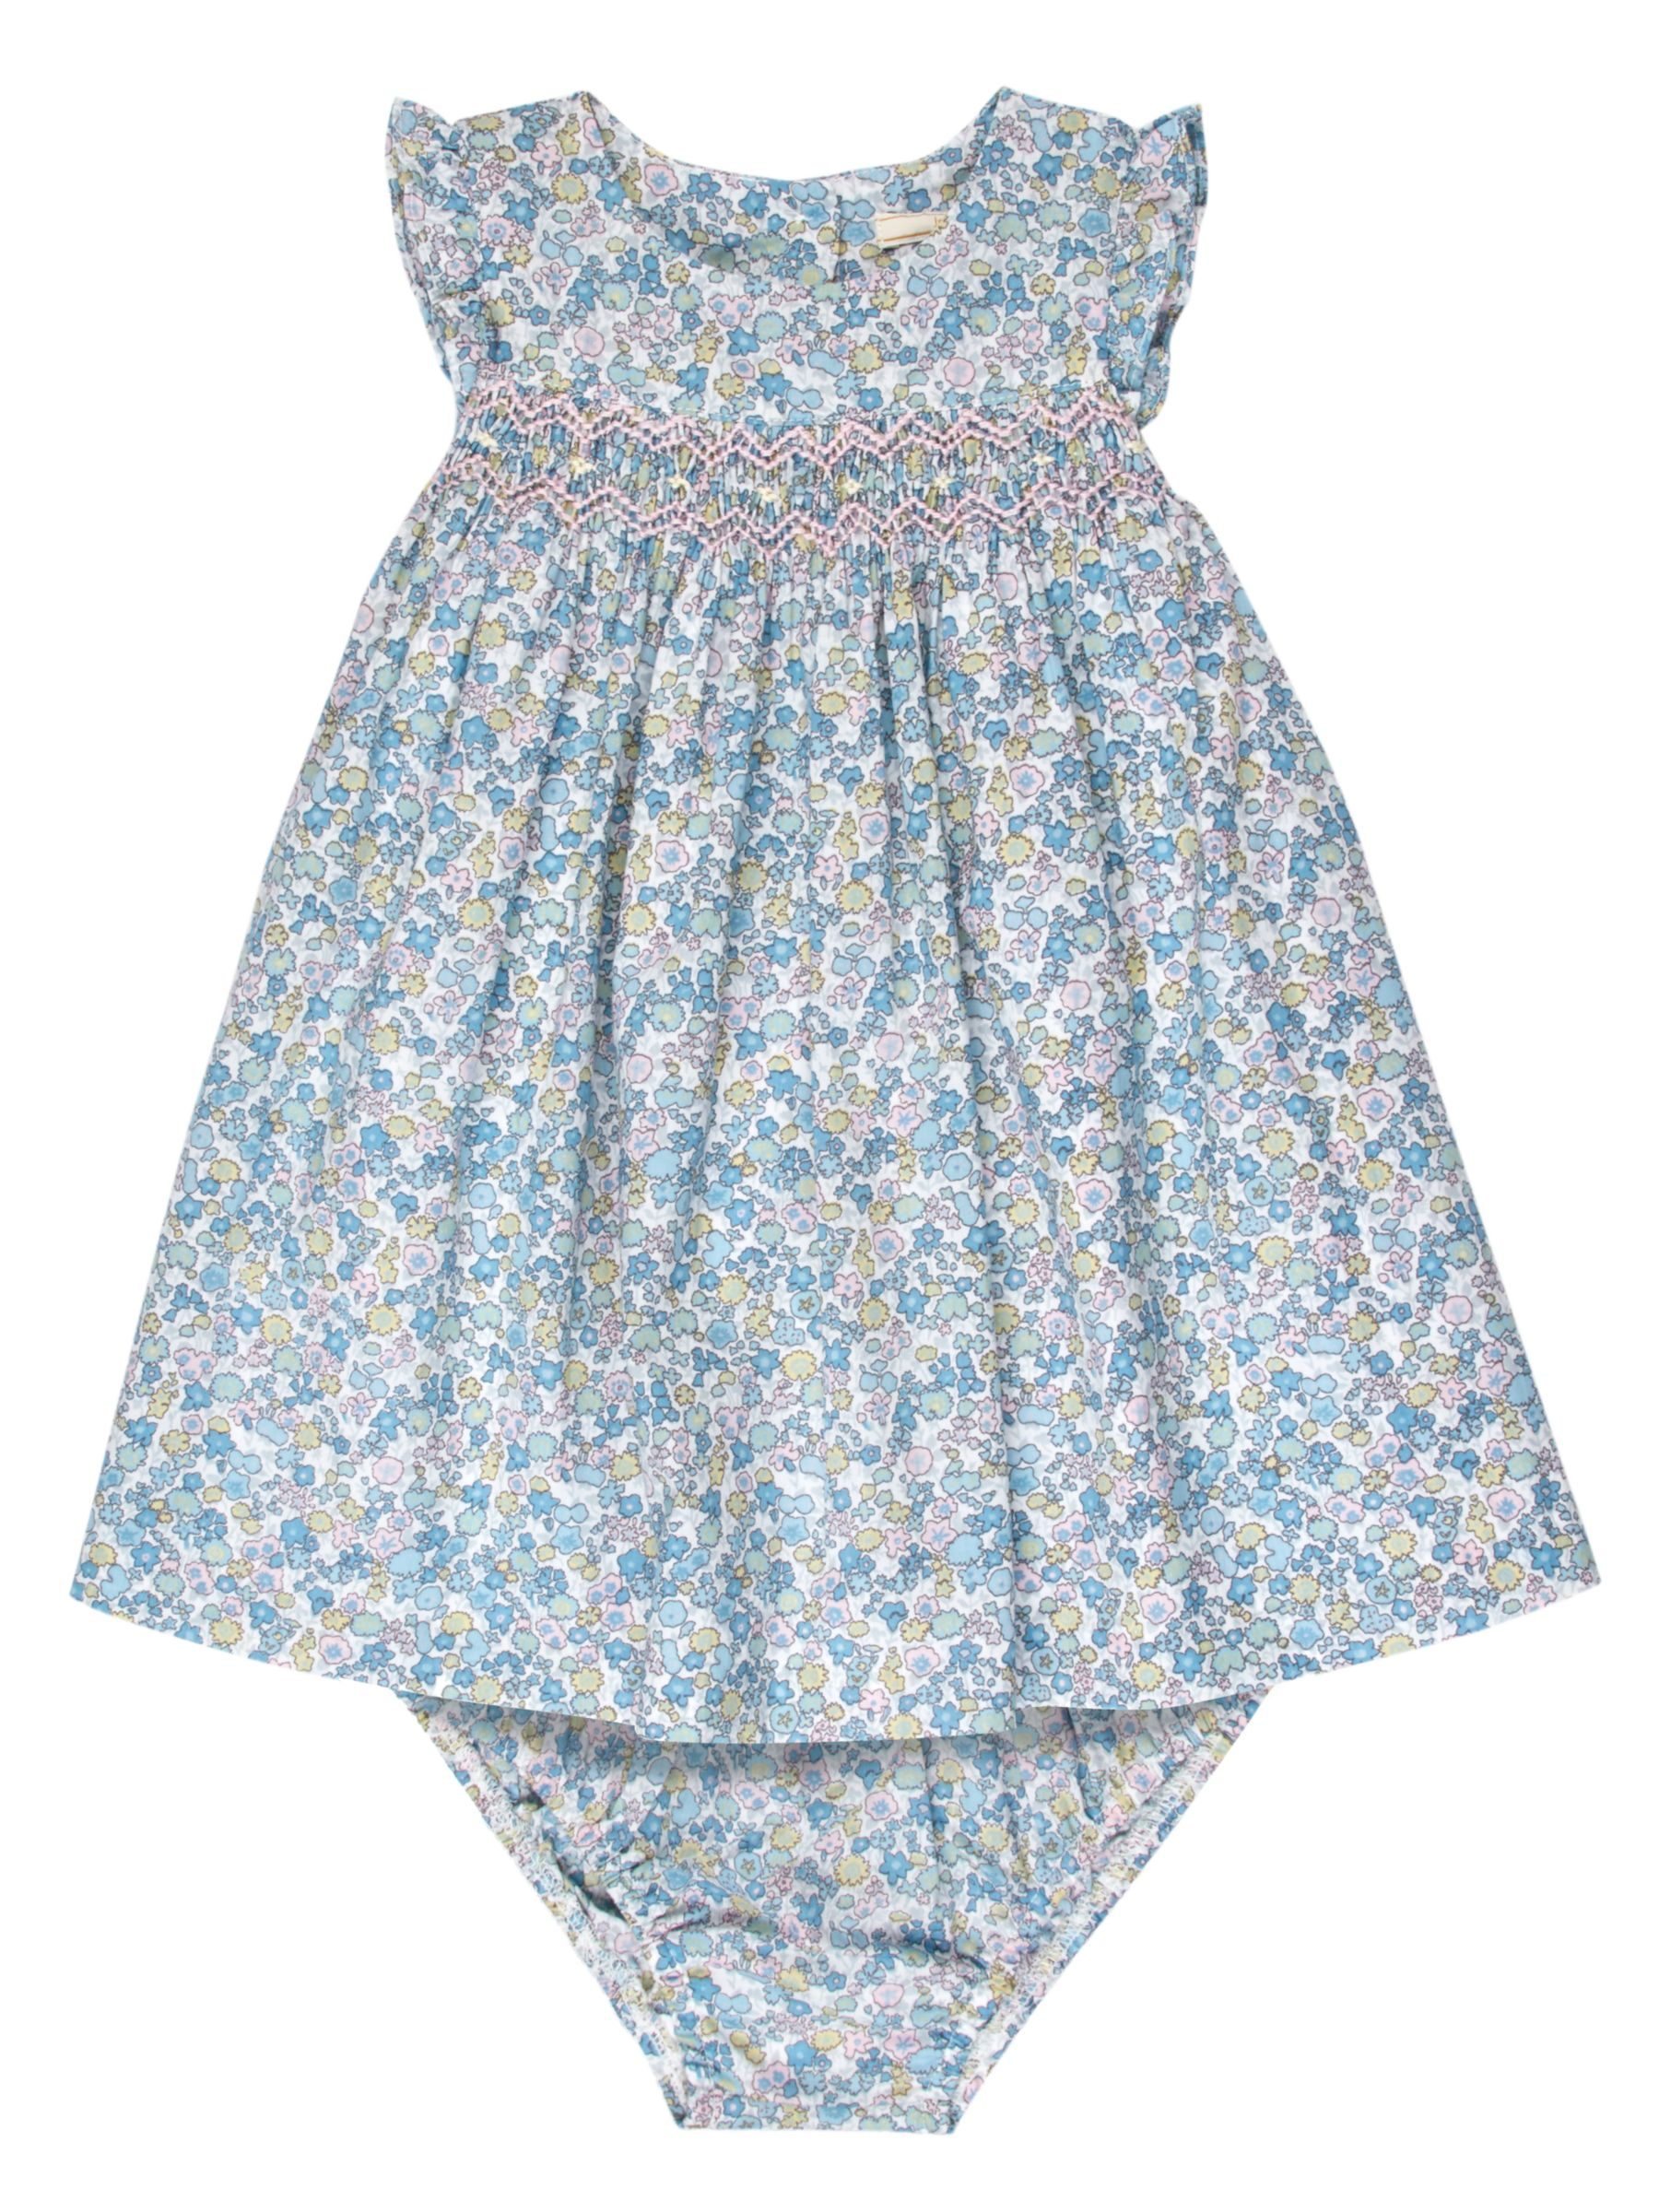 John Lewis Heirloom Collection John Lewis Heirloom Collection Baby Ditsy Smock Dress and Knickers Set, Blue/Multi